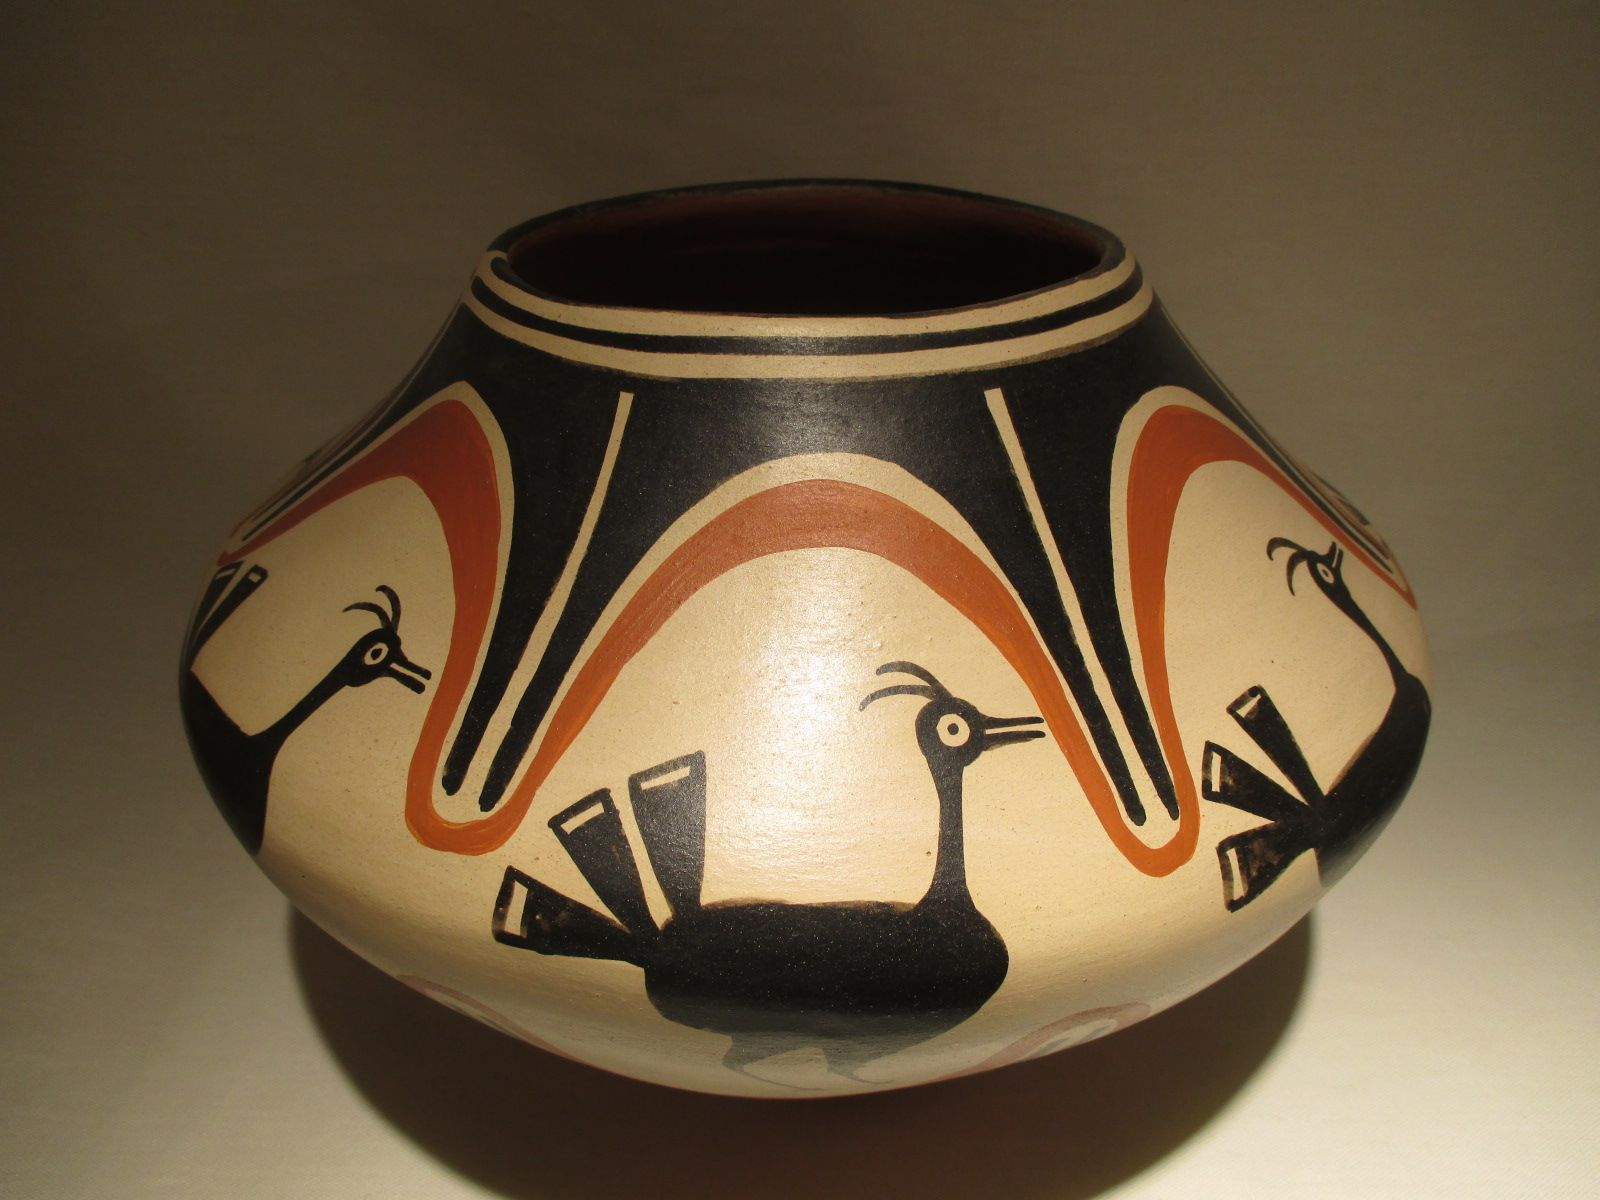 Acoma Pottery - Hand Crafted Sun Pot by Native American Artists E ...